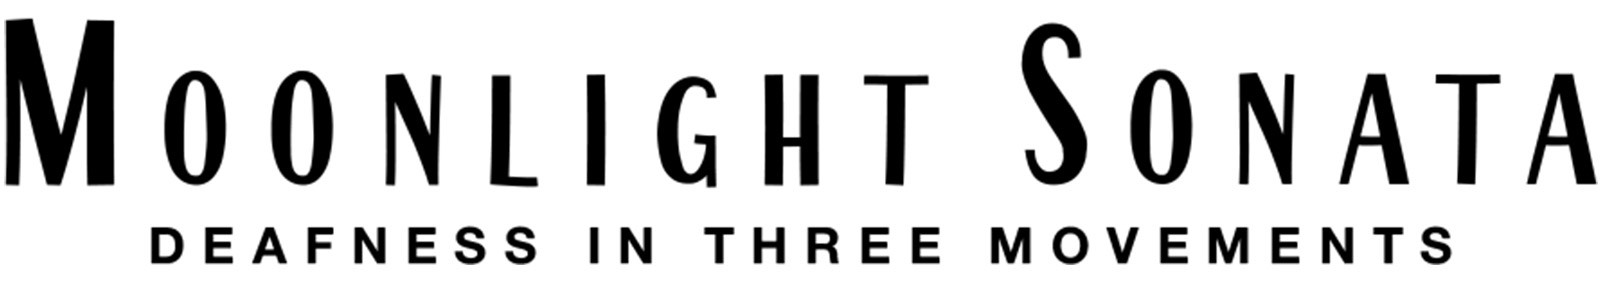 moonlight-sonata-deafness-in-three-movements-logo-1600x300.jpg